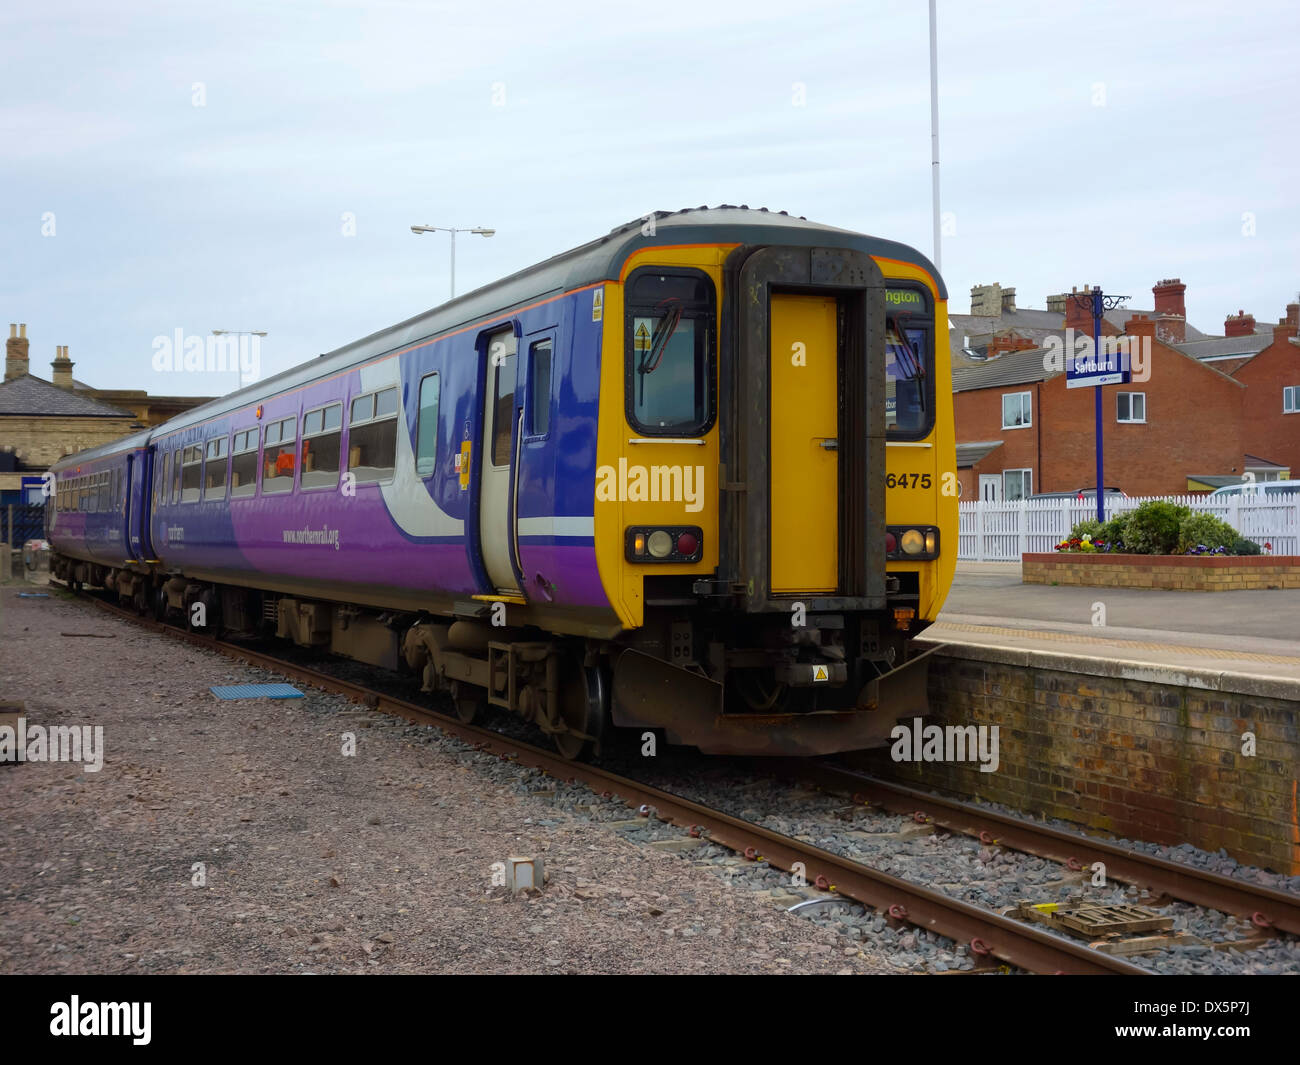 A Northern Rail train to Darlington at the branch line